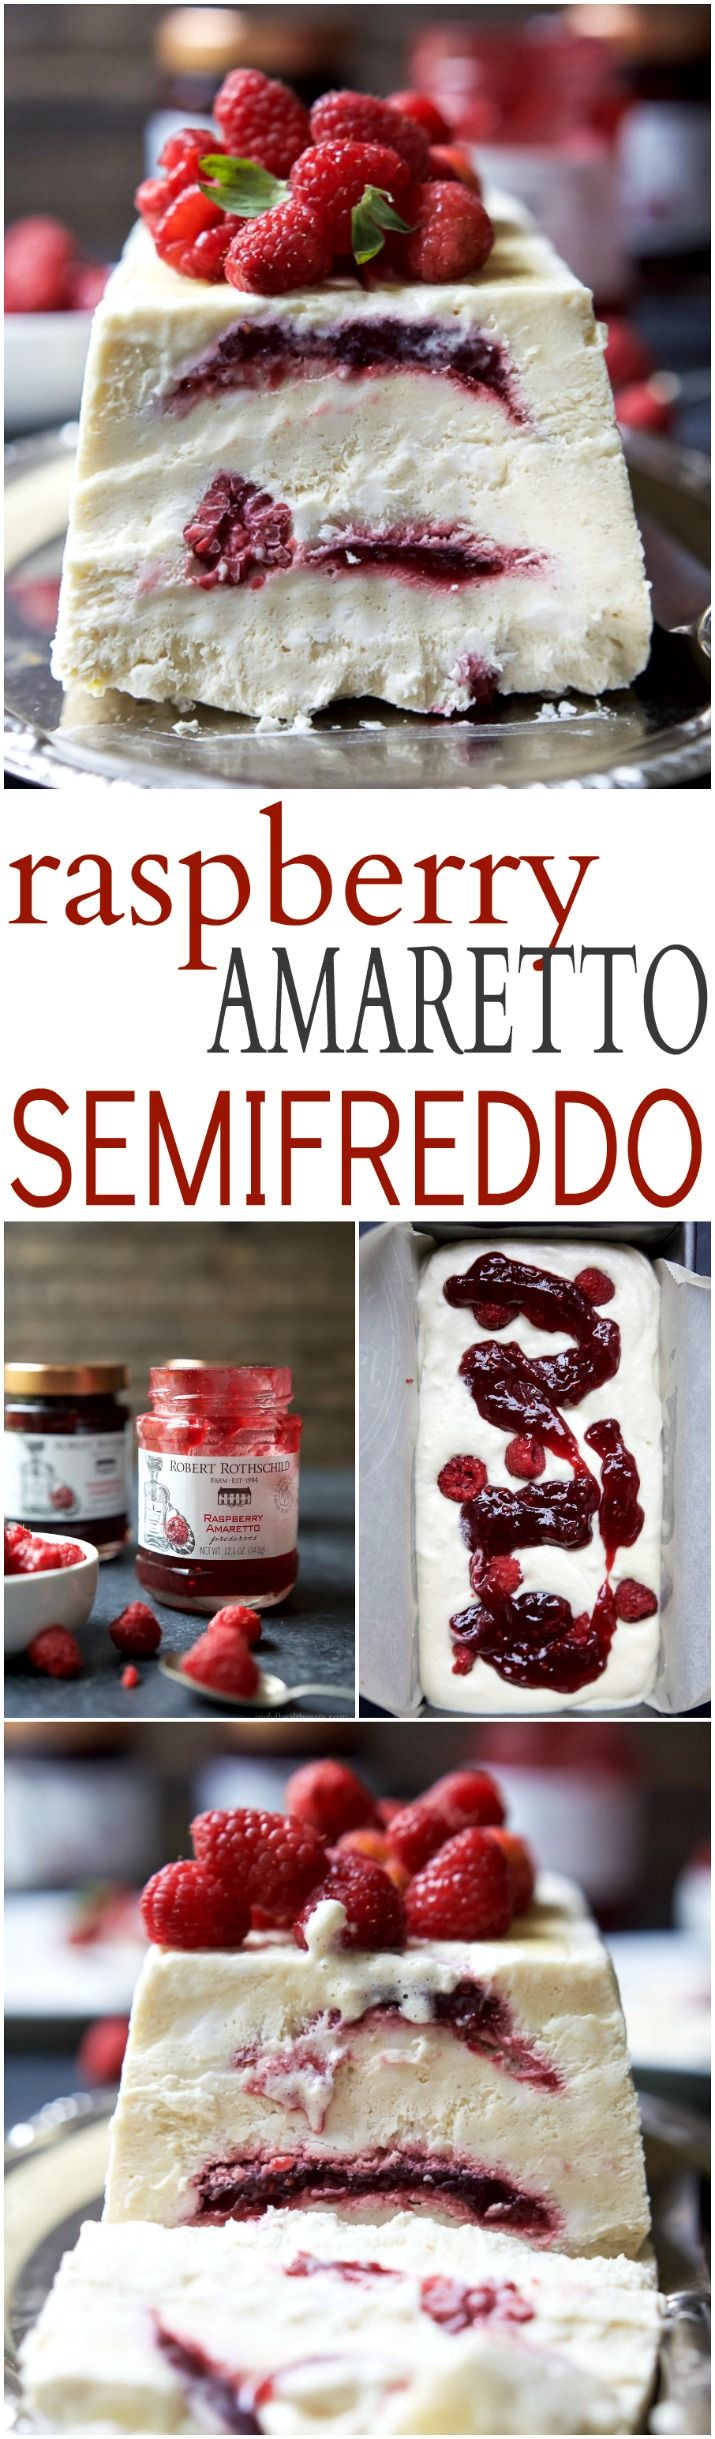 Indulgent Raspberry Amaretto Semifreddo, it's everything ice cream wishes it could be - light, creamy, and airy. This dessert is perfect for the summer and you'll love the secret sauce nestled inside every bite!| joyfulhealthyeats.com #glutenfree #ad #dairyfree